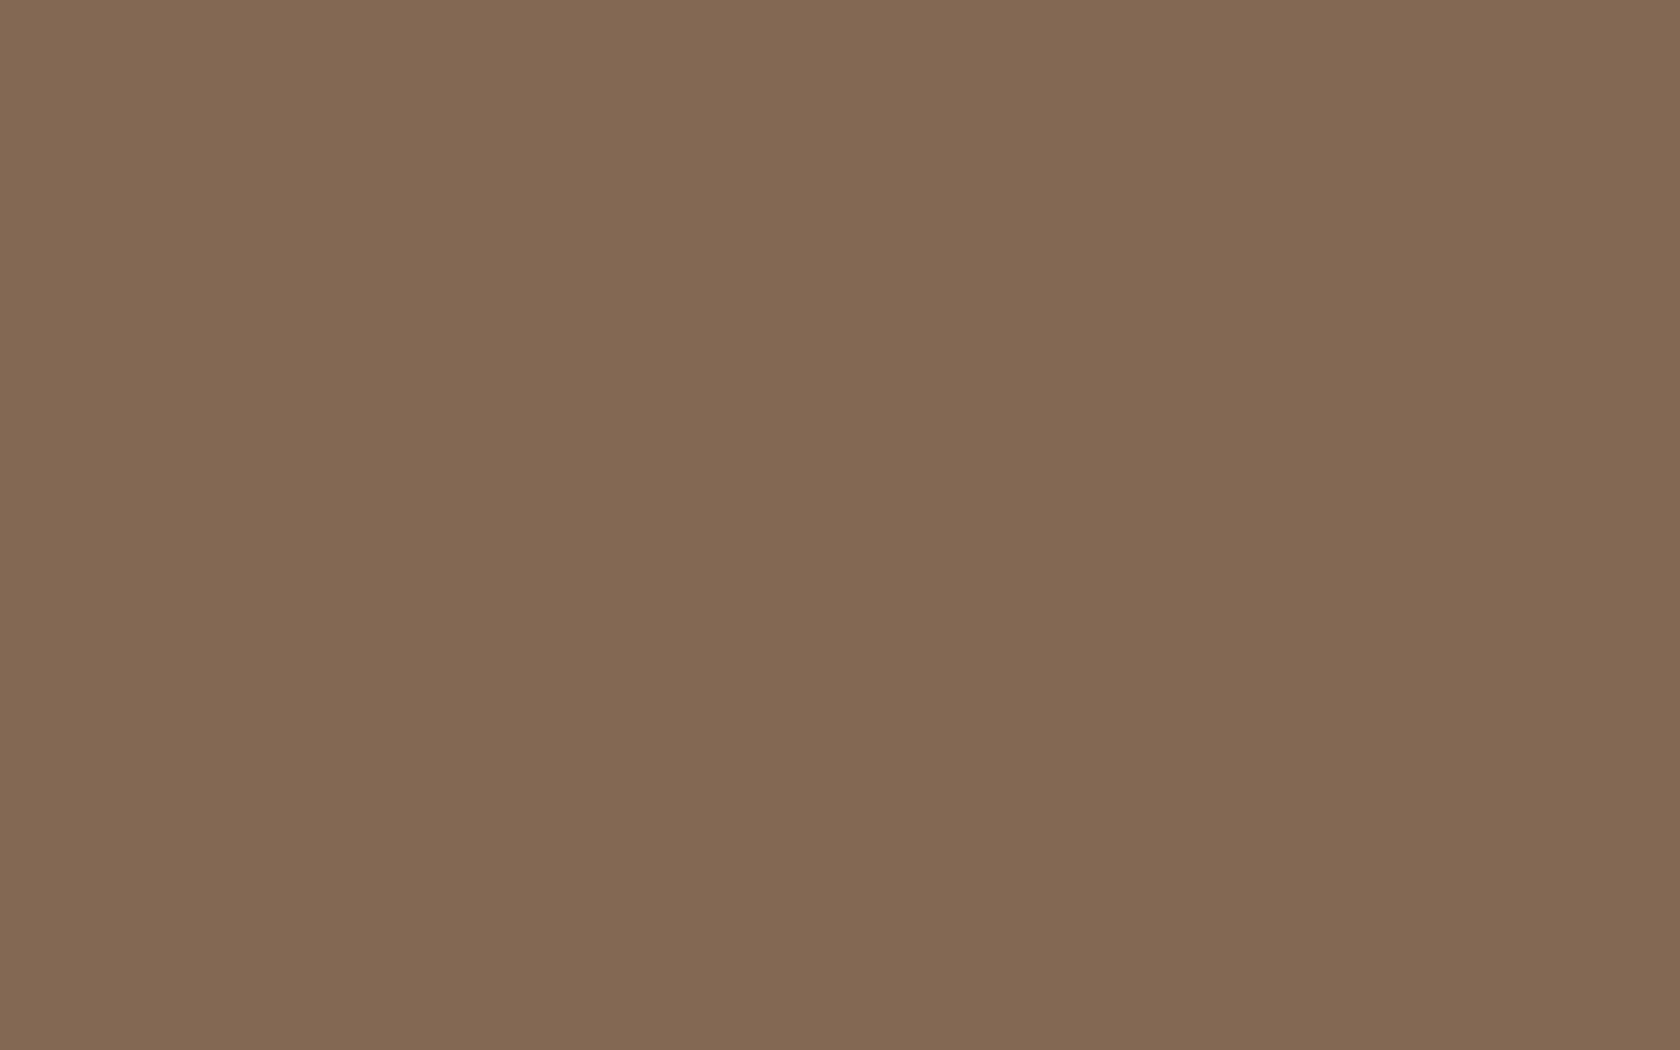 1680x1050 Pastel Brown Solid Color Background